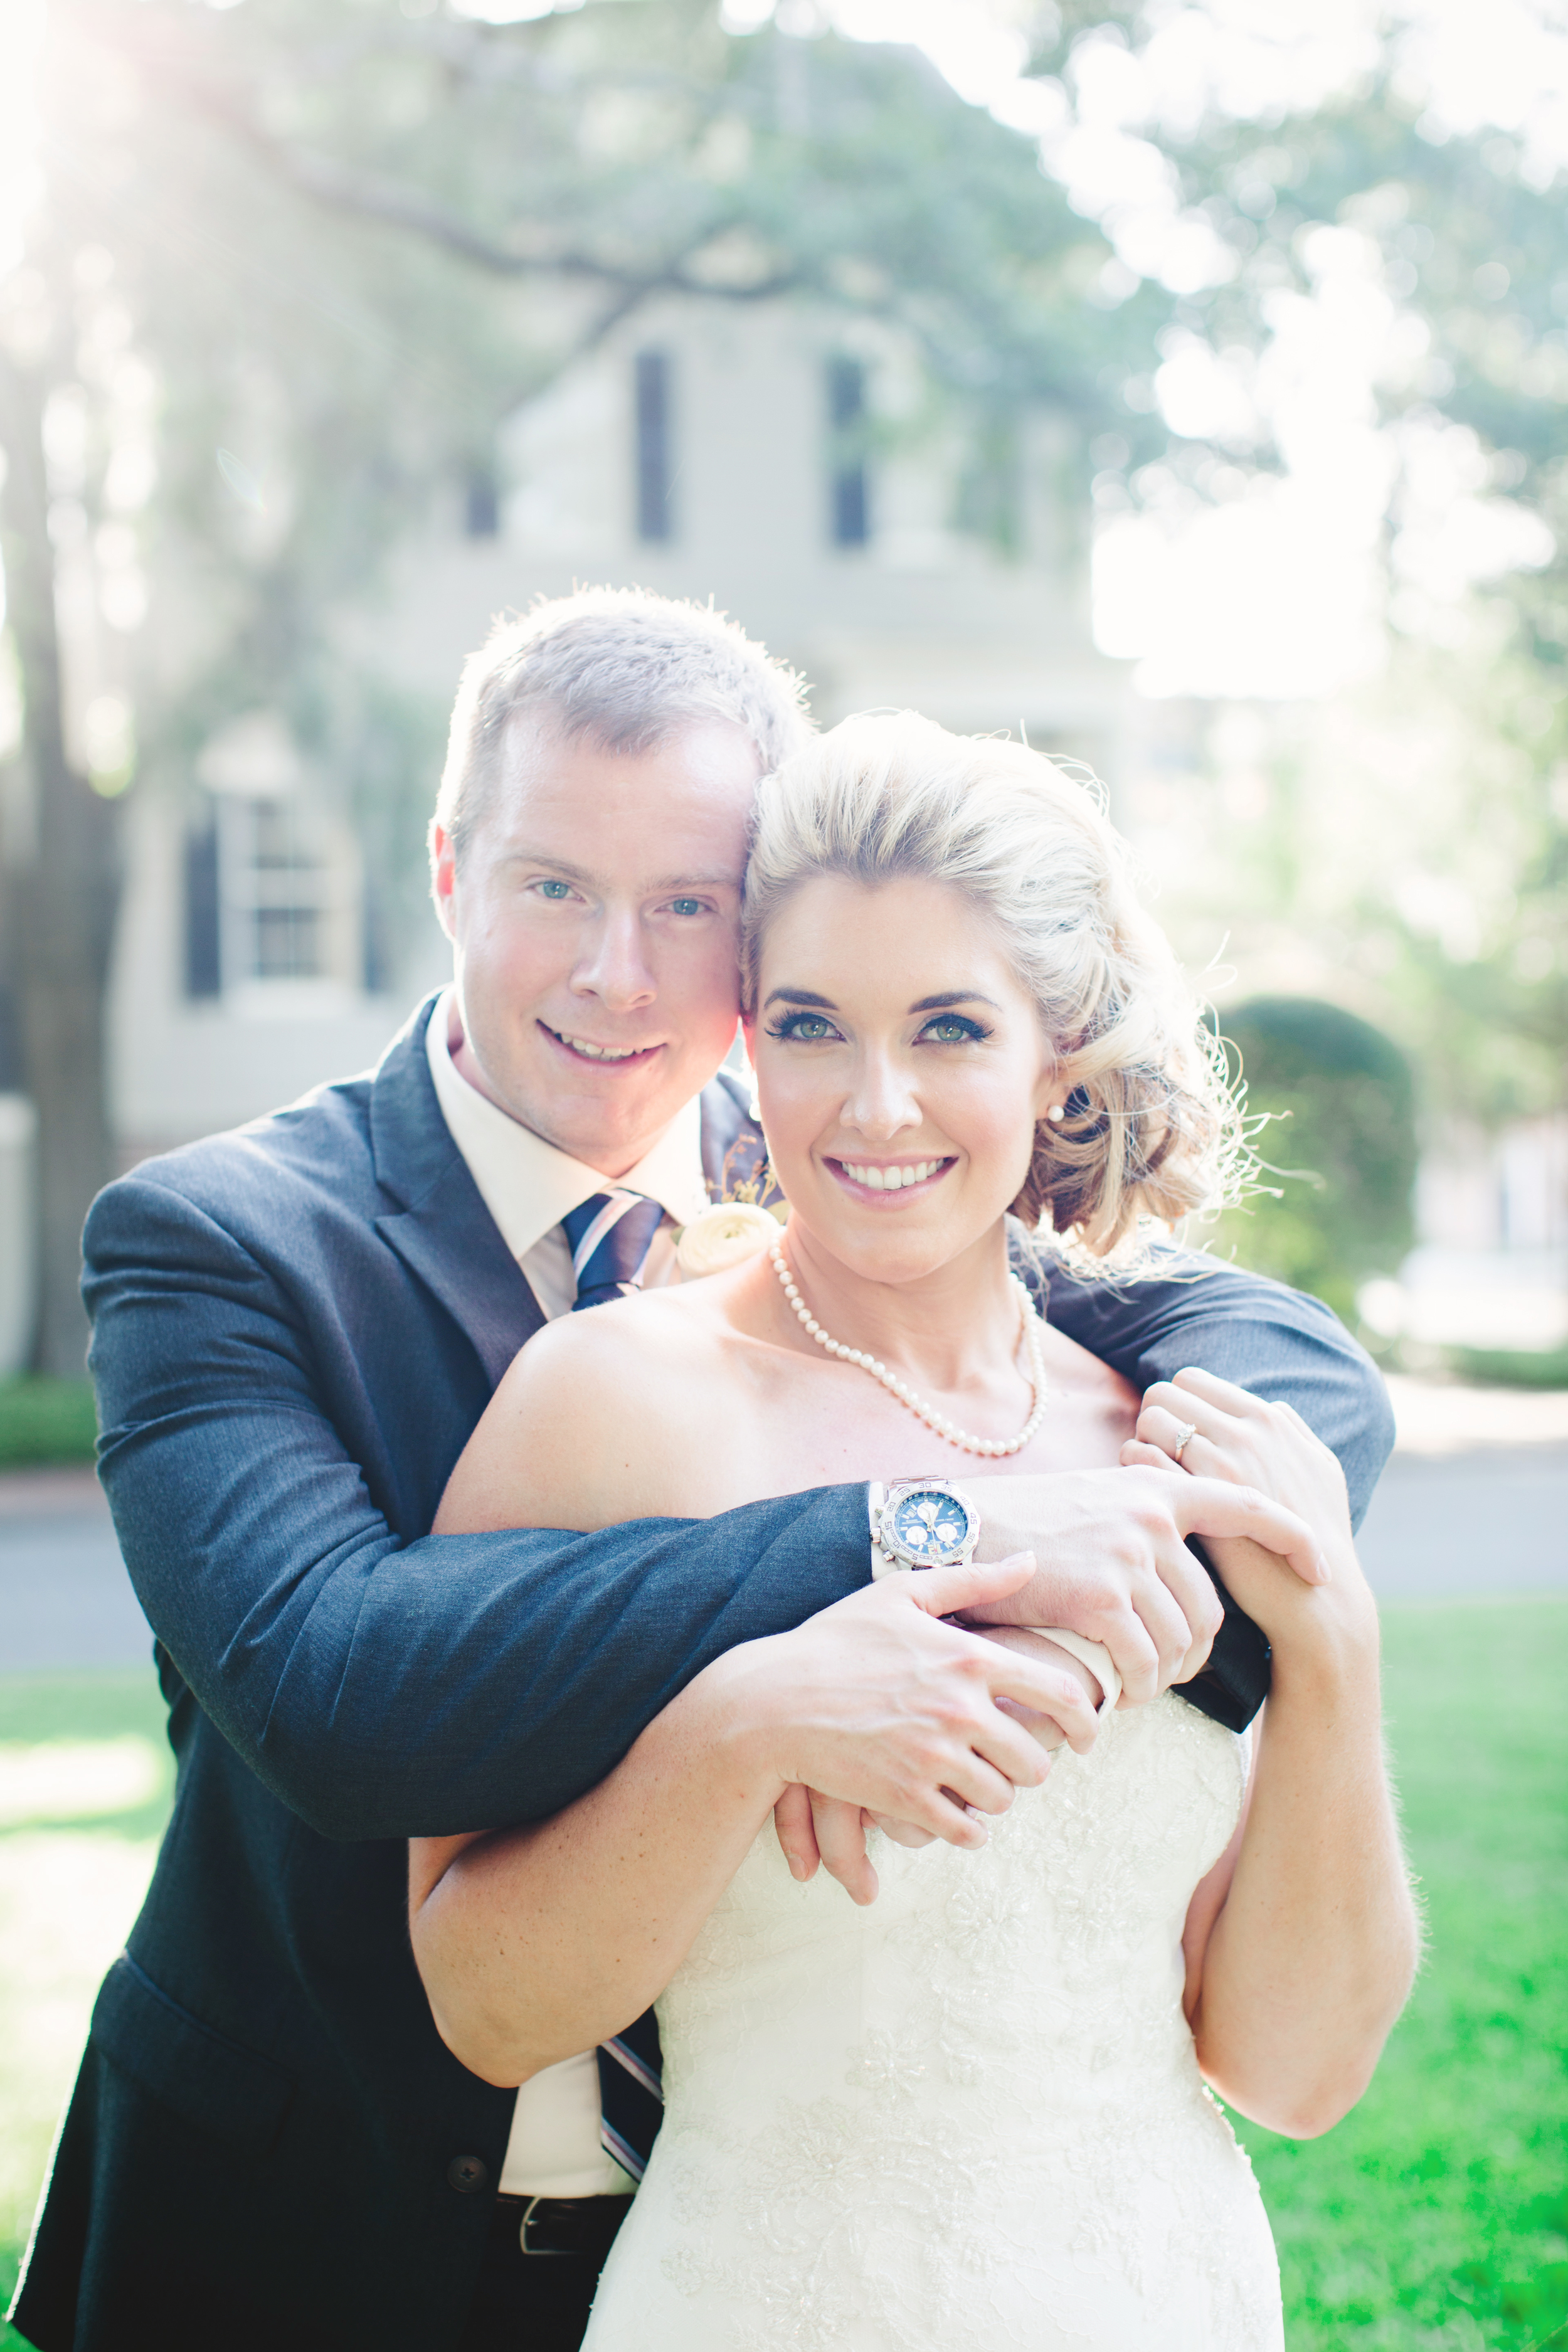 Hillary-and-Brian-izzy-hudgins-photography-anais-anette-tristan-lace-mermaid-wedding-dress-ivory-and-beau-bridal-boutique-savannah-bridal-boutique-savannah-wedding-dresses-savannah-bridal-gowns-savannah-wedding-dresses-first-babtist-savannah-28.jpg